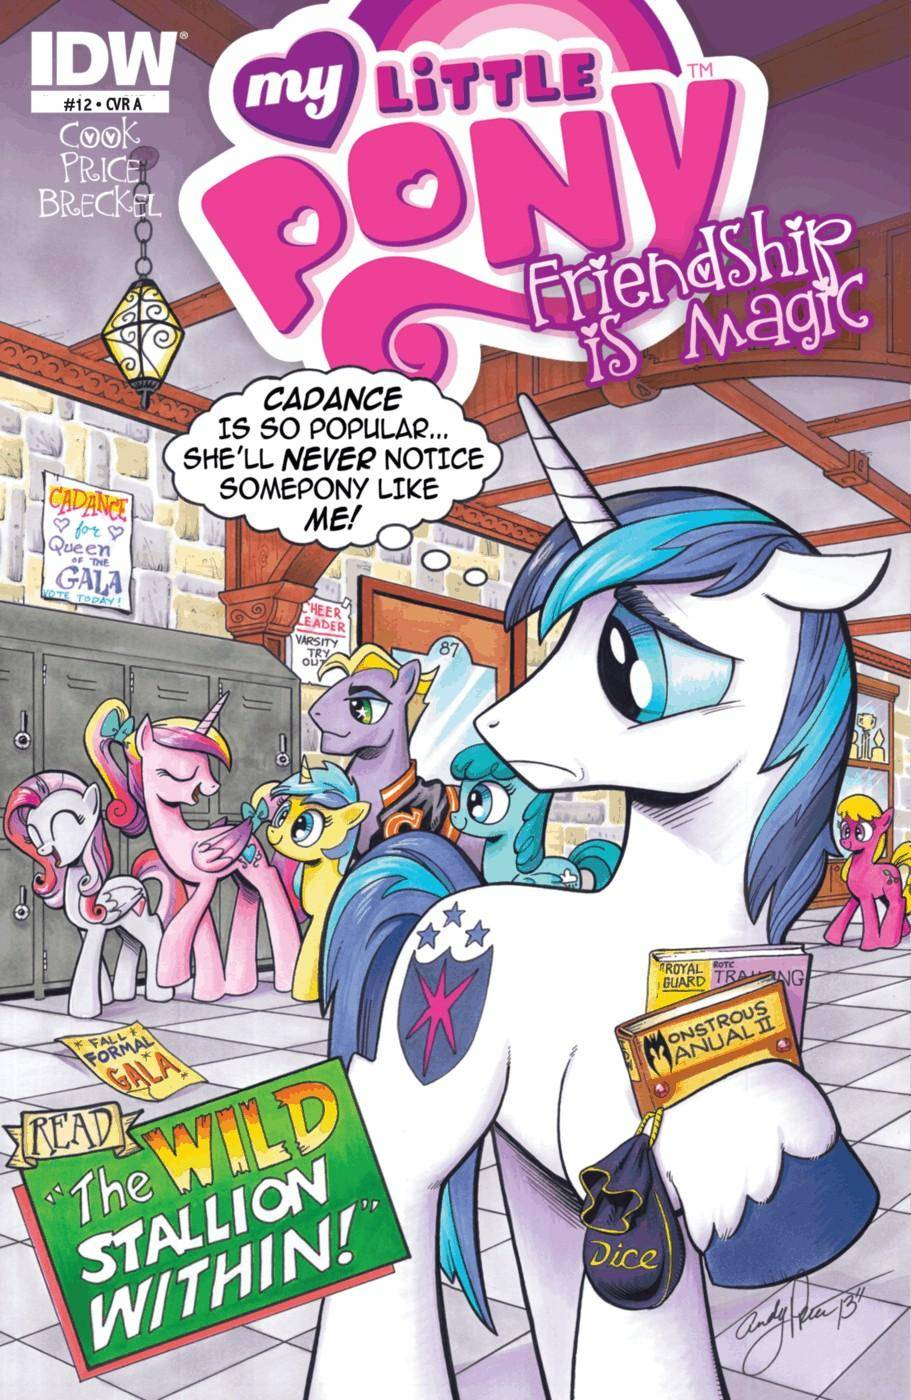 My Little Pony - Friendship is Magic 012 2013 2 covers digital